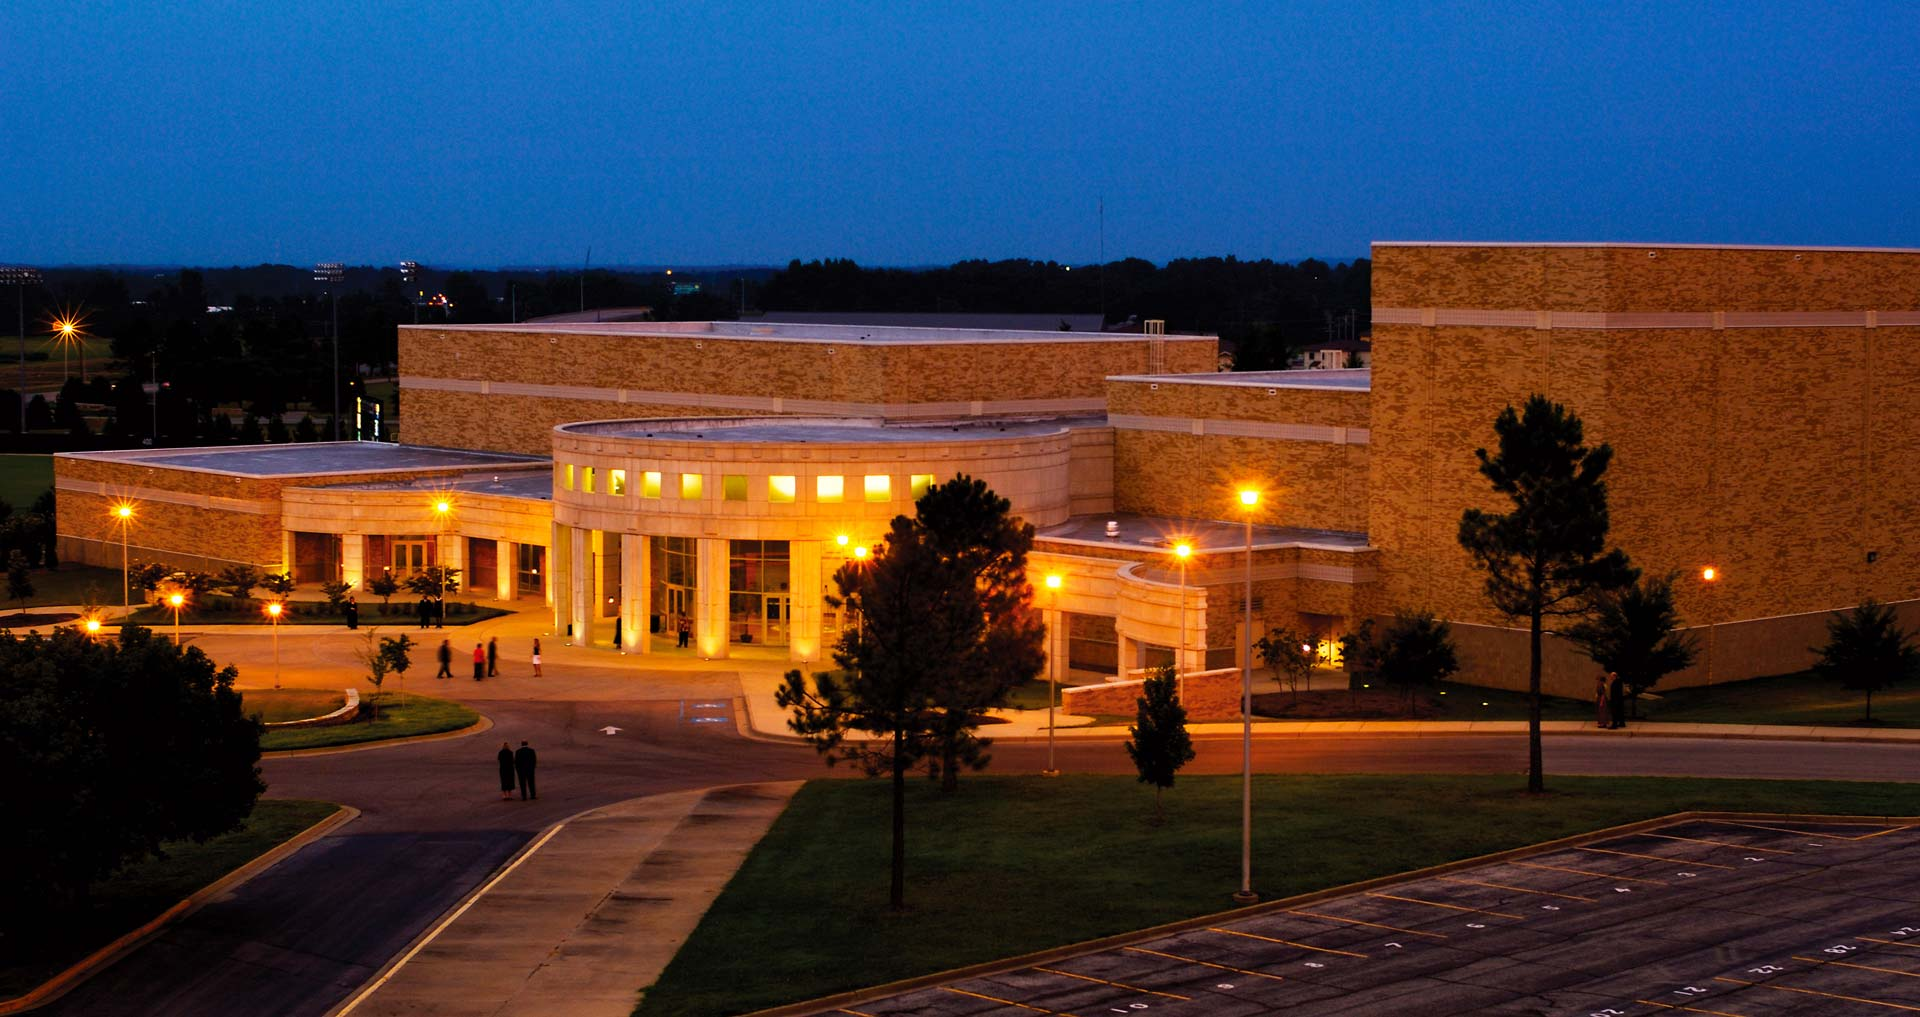 The Fowler Center at night